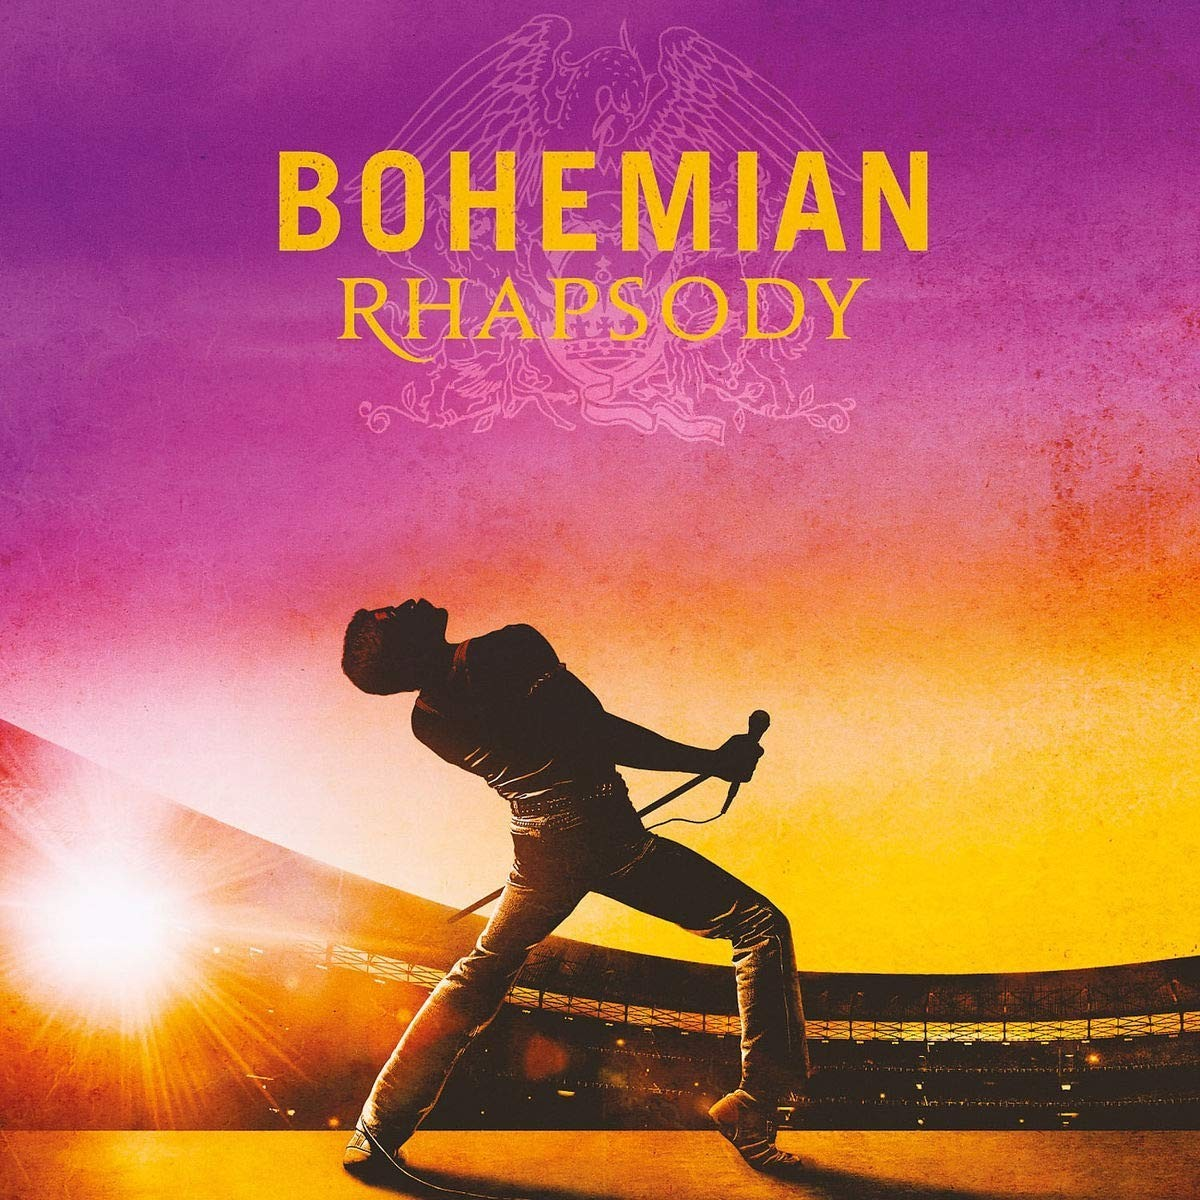 CD Bohemian Rhapsody soundtrack